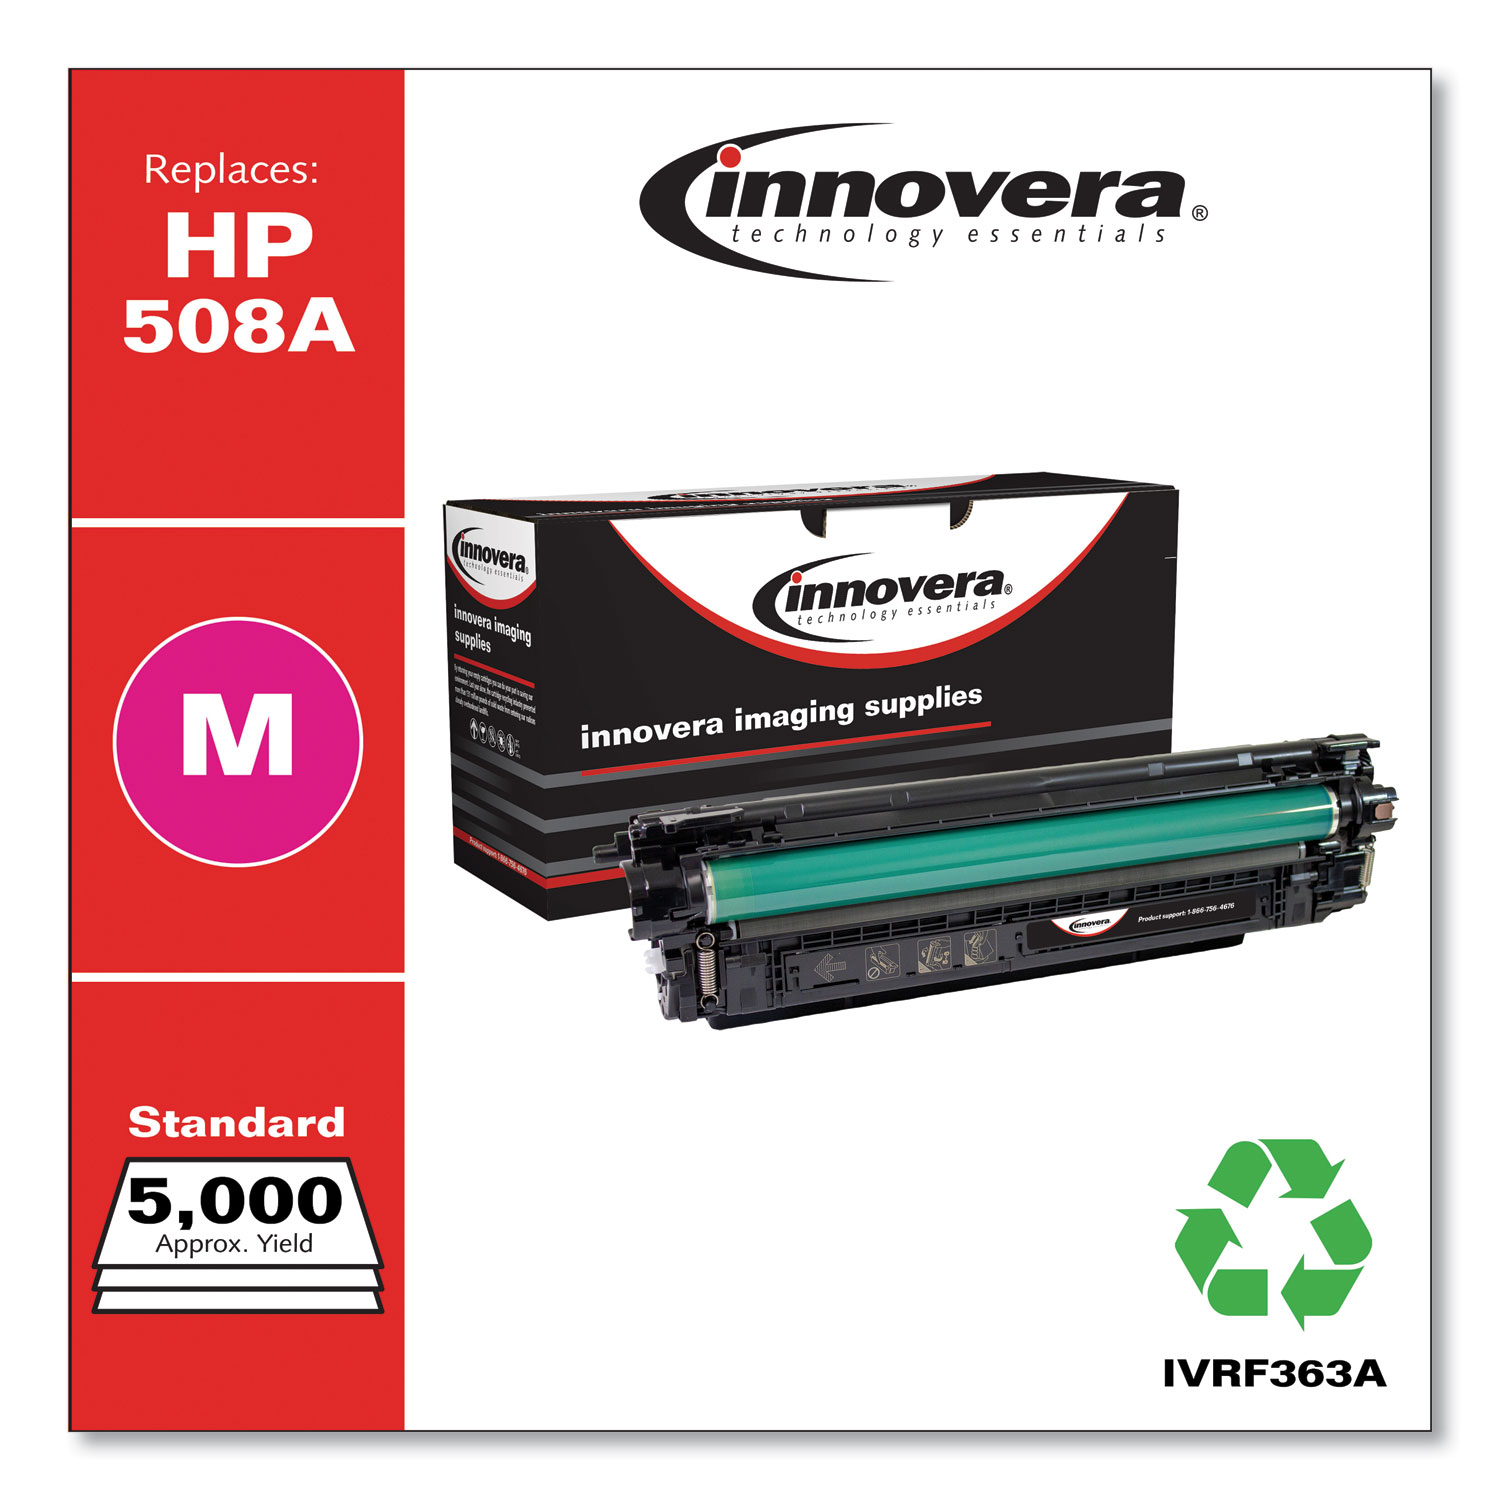 Remanufactured Magenta Toner, Replacement for HP 508A (CF363A), 5,000 Page-Yield IVRF363A